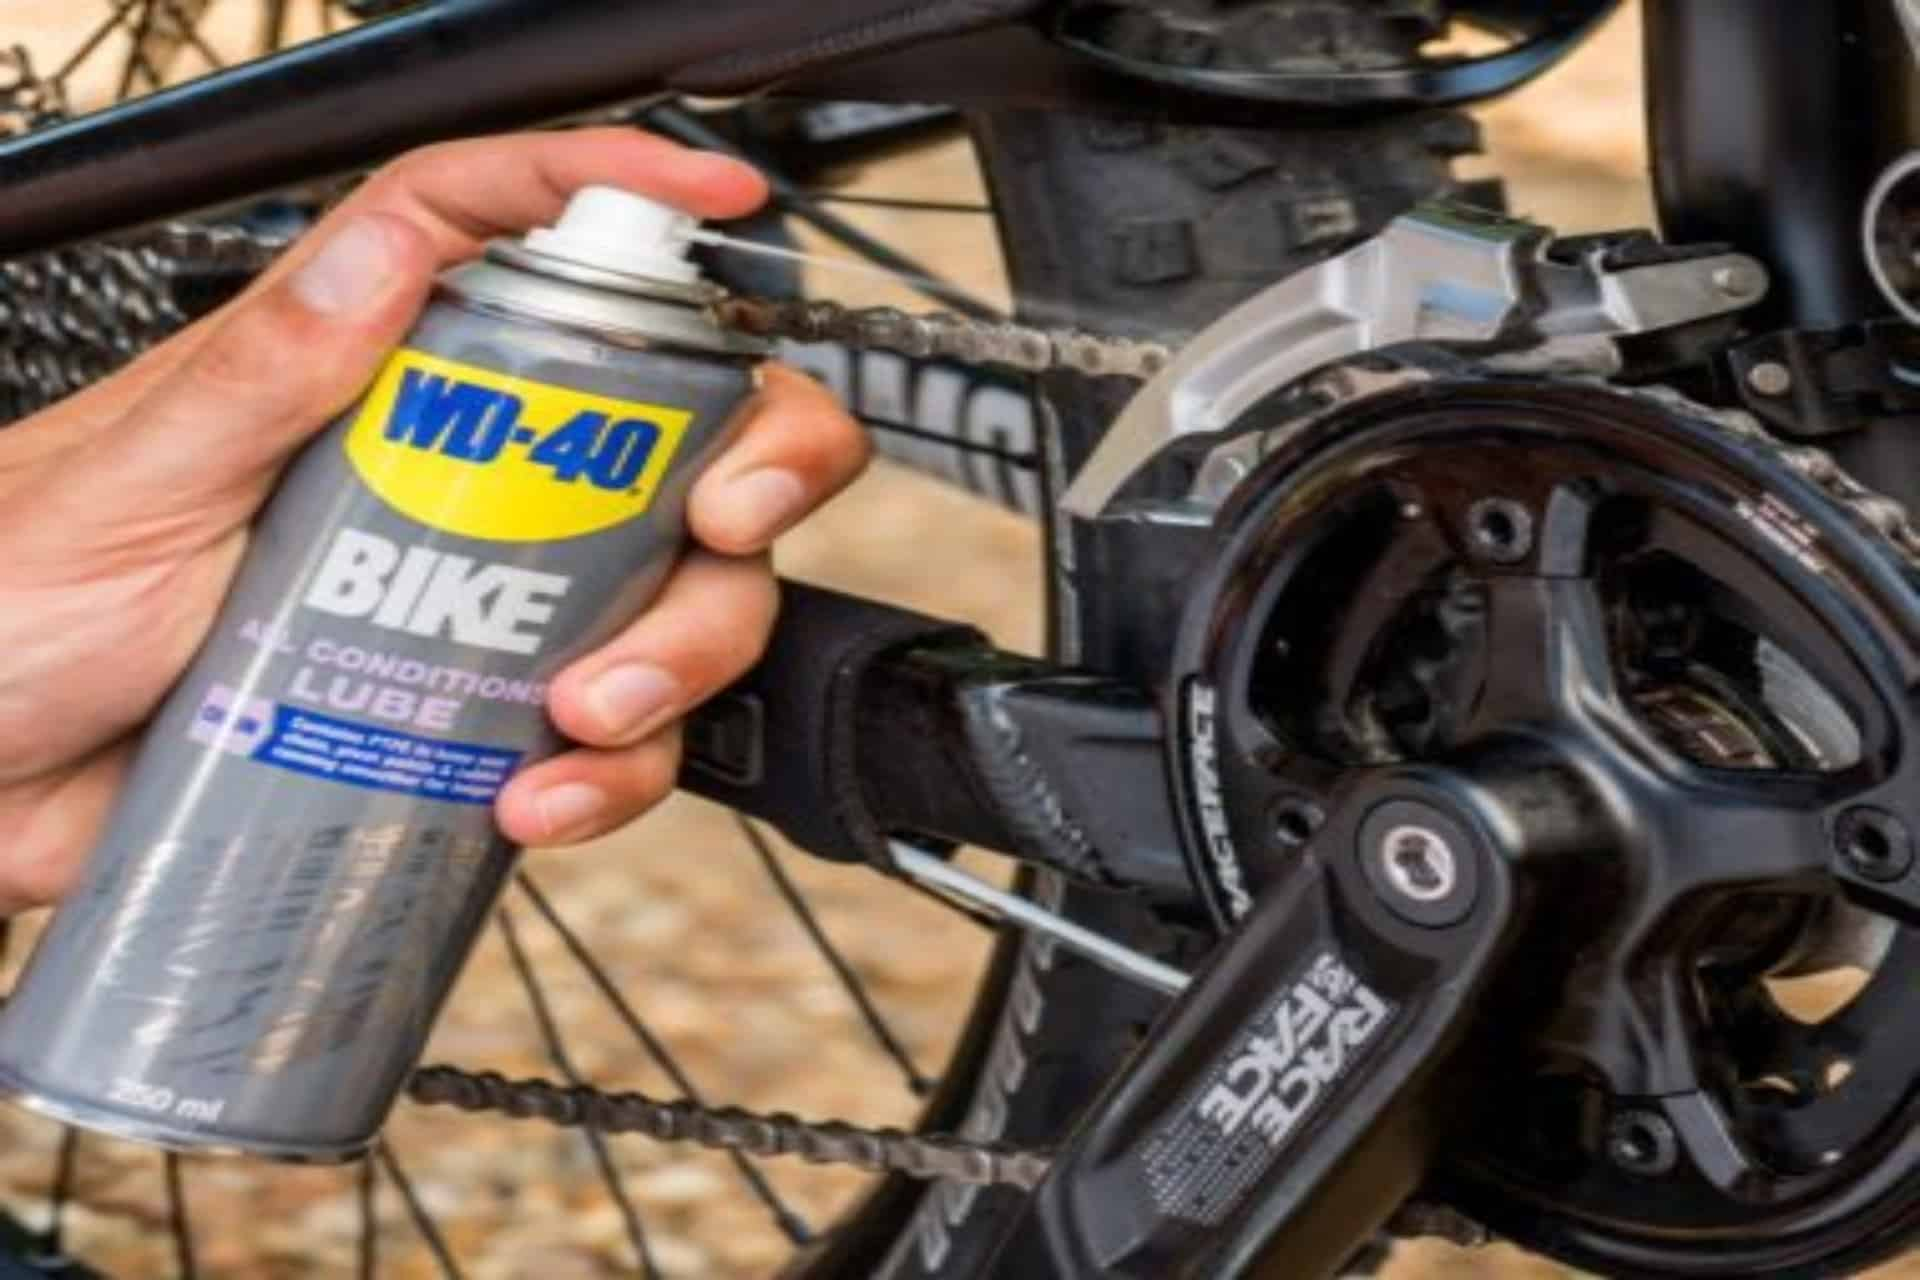 wd40 bike chain